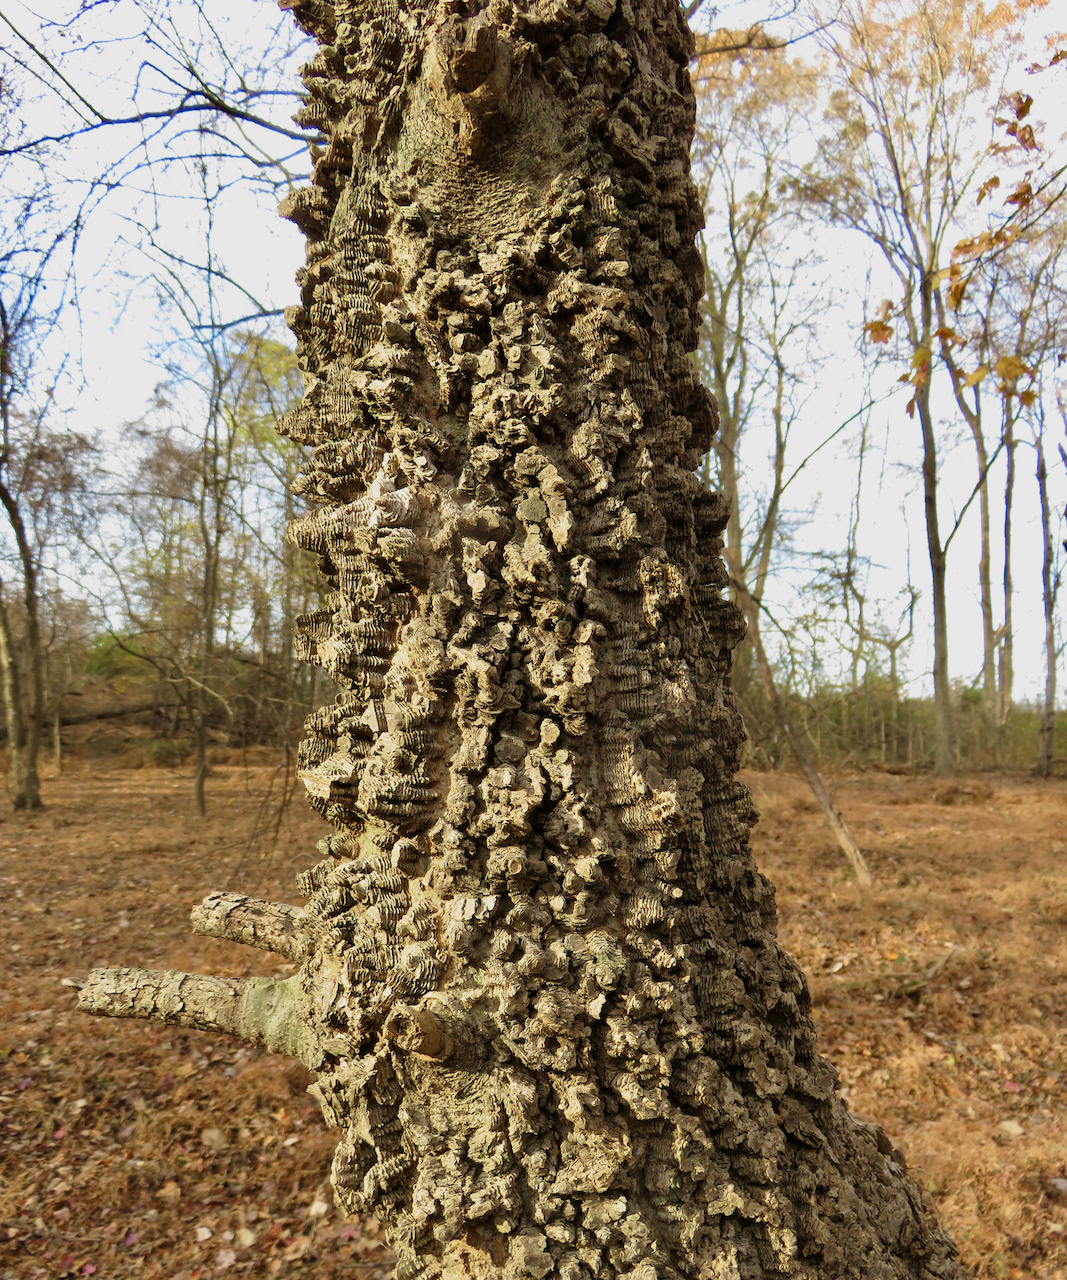 The Scientific Name is Celtis laevigata. You will likely hear them called Southern Hackberry, Sugarberry. This picture shows the Corky, irregularly patterned bark of Celtis laevigata